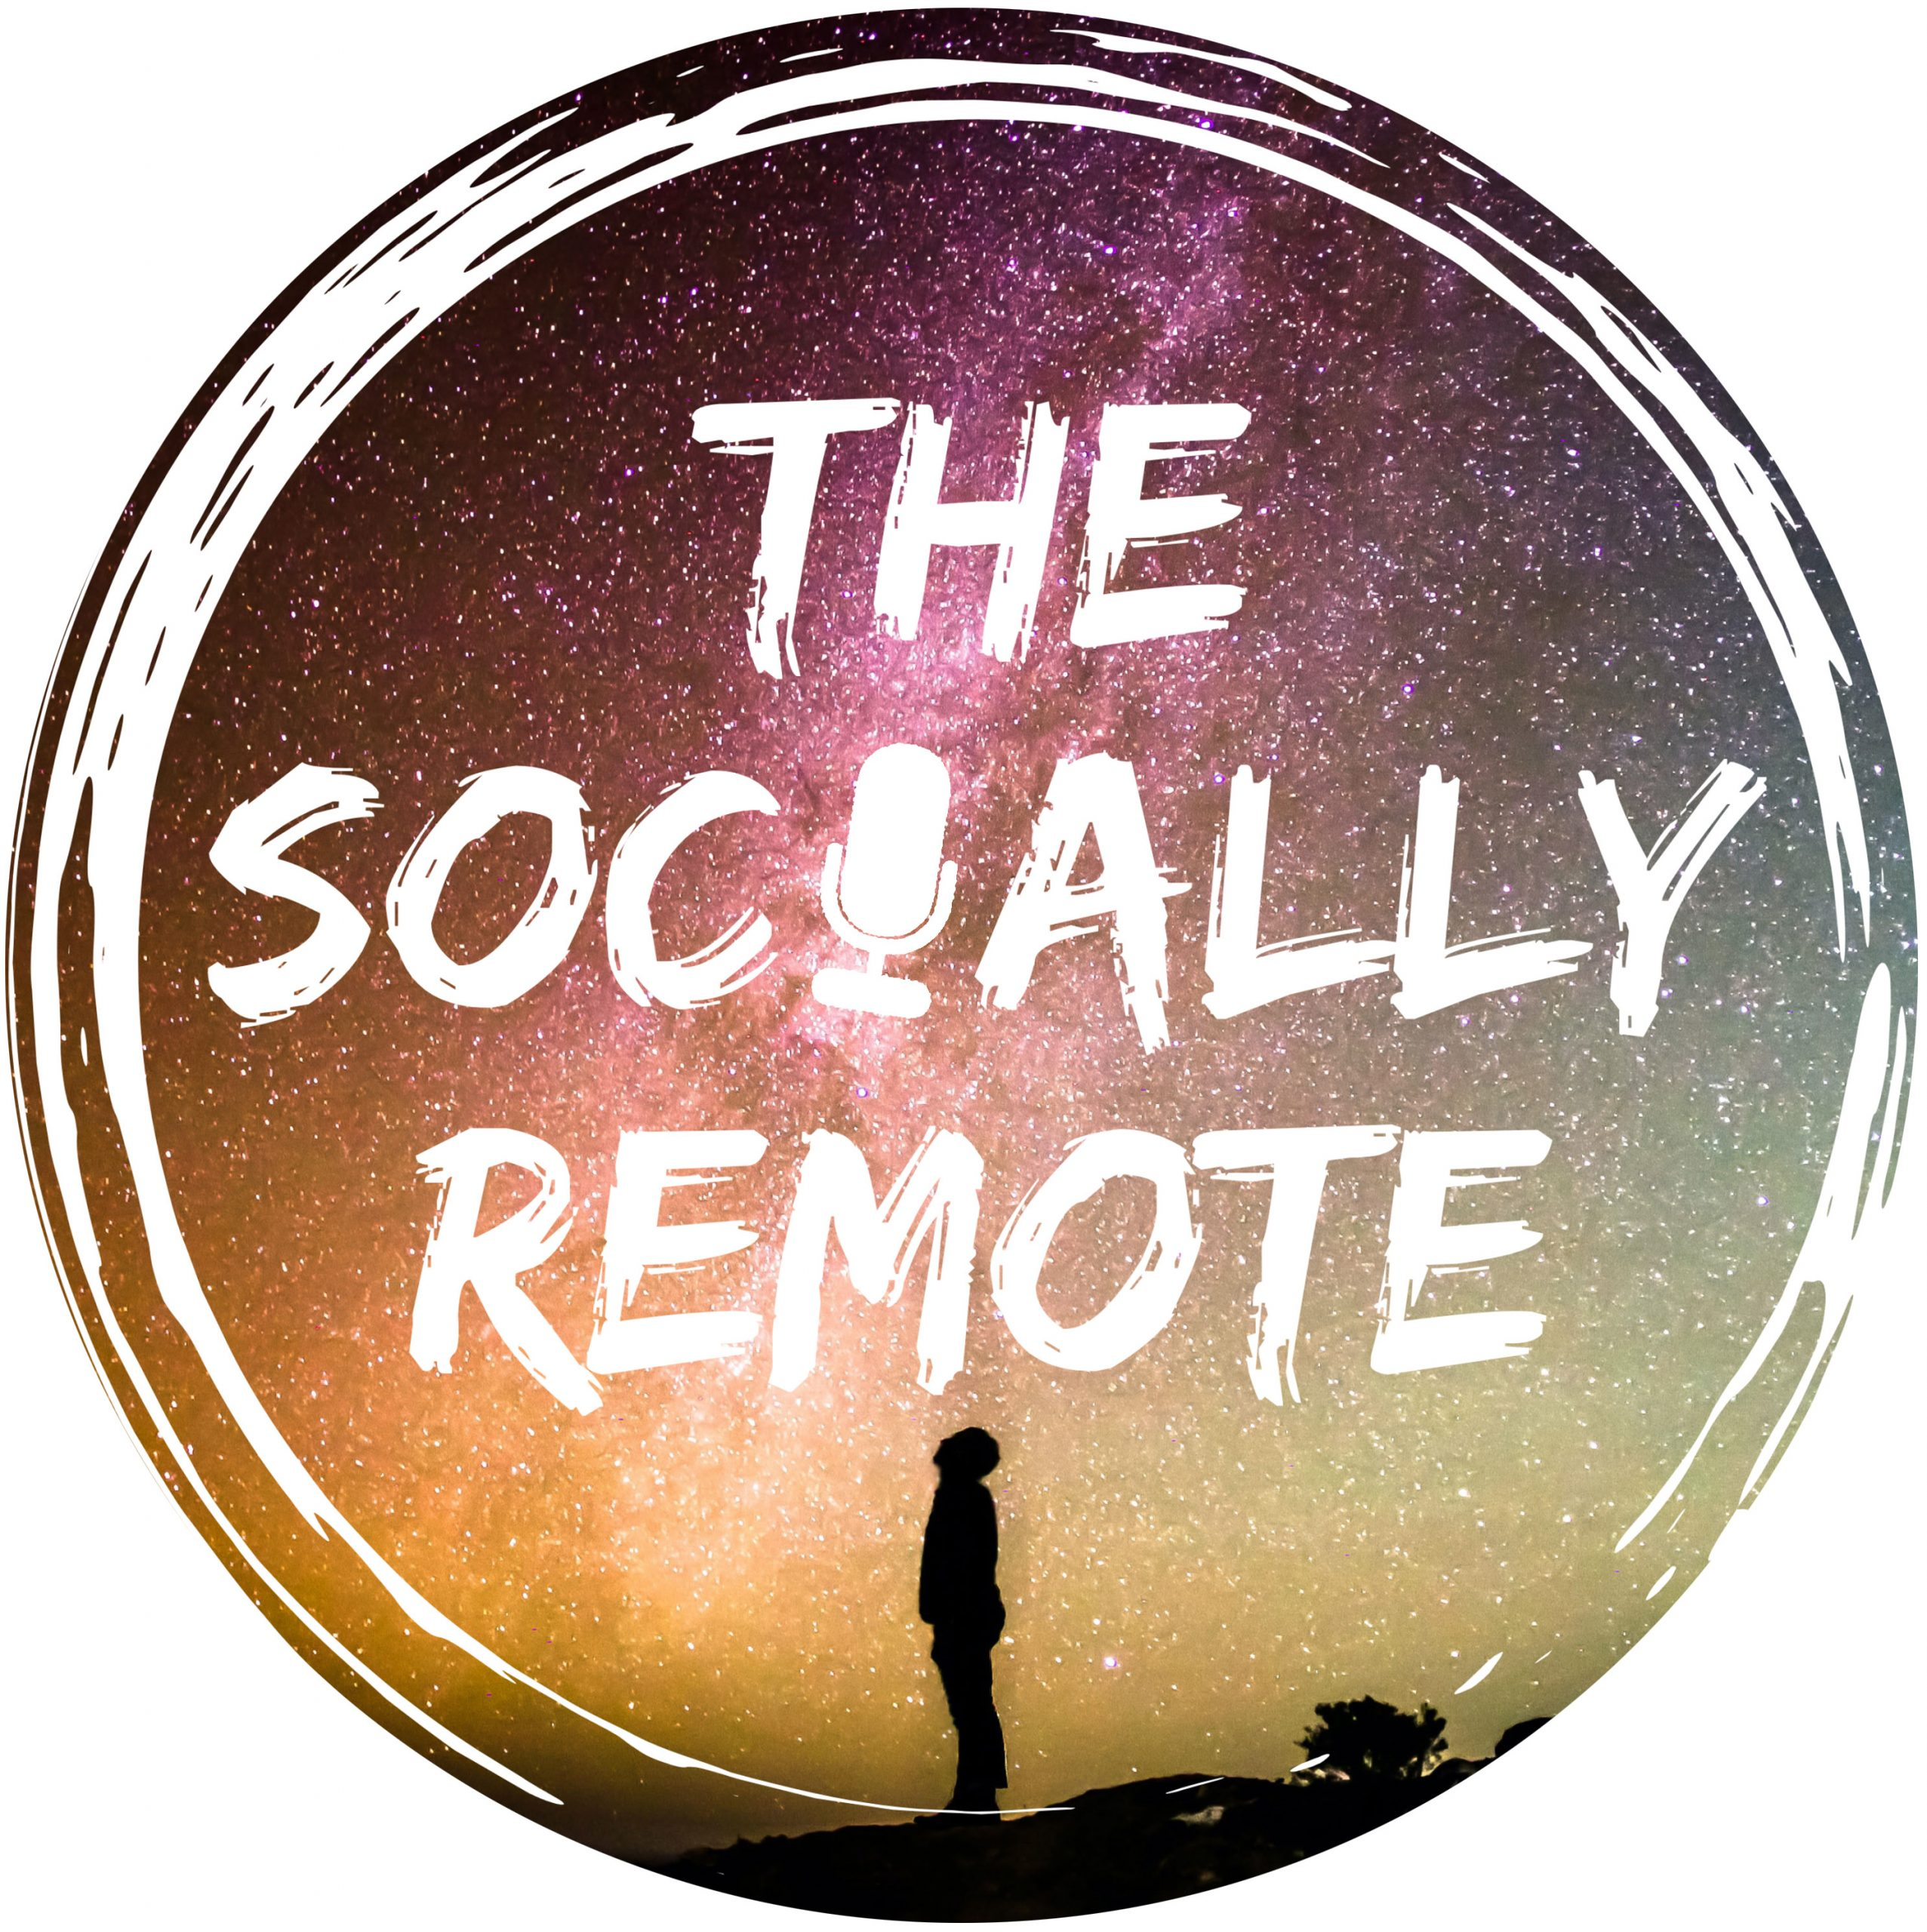 Podcast: The Socially Remote: Critical Theory and the Christian: An Interview with Neil Shenvi and Pat Sawyer (Pt. II)